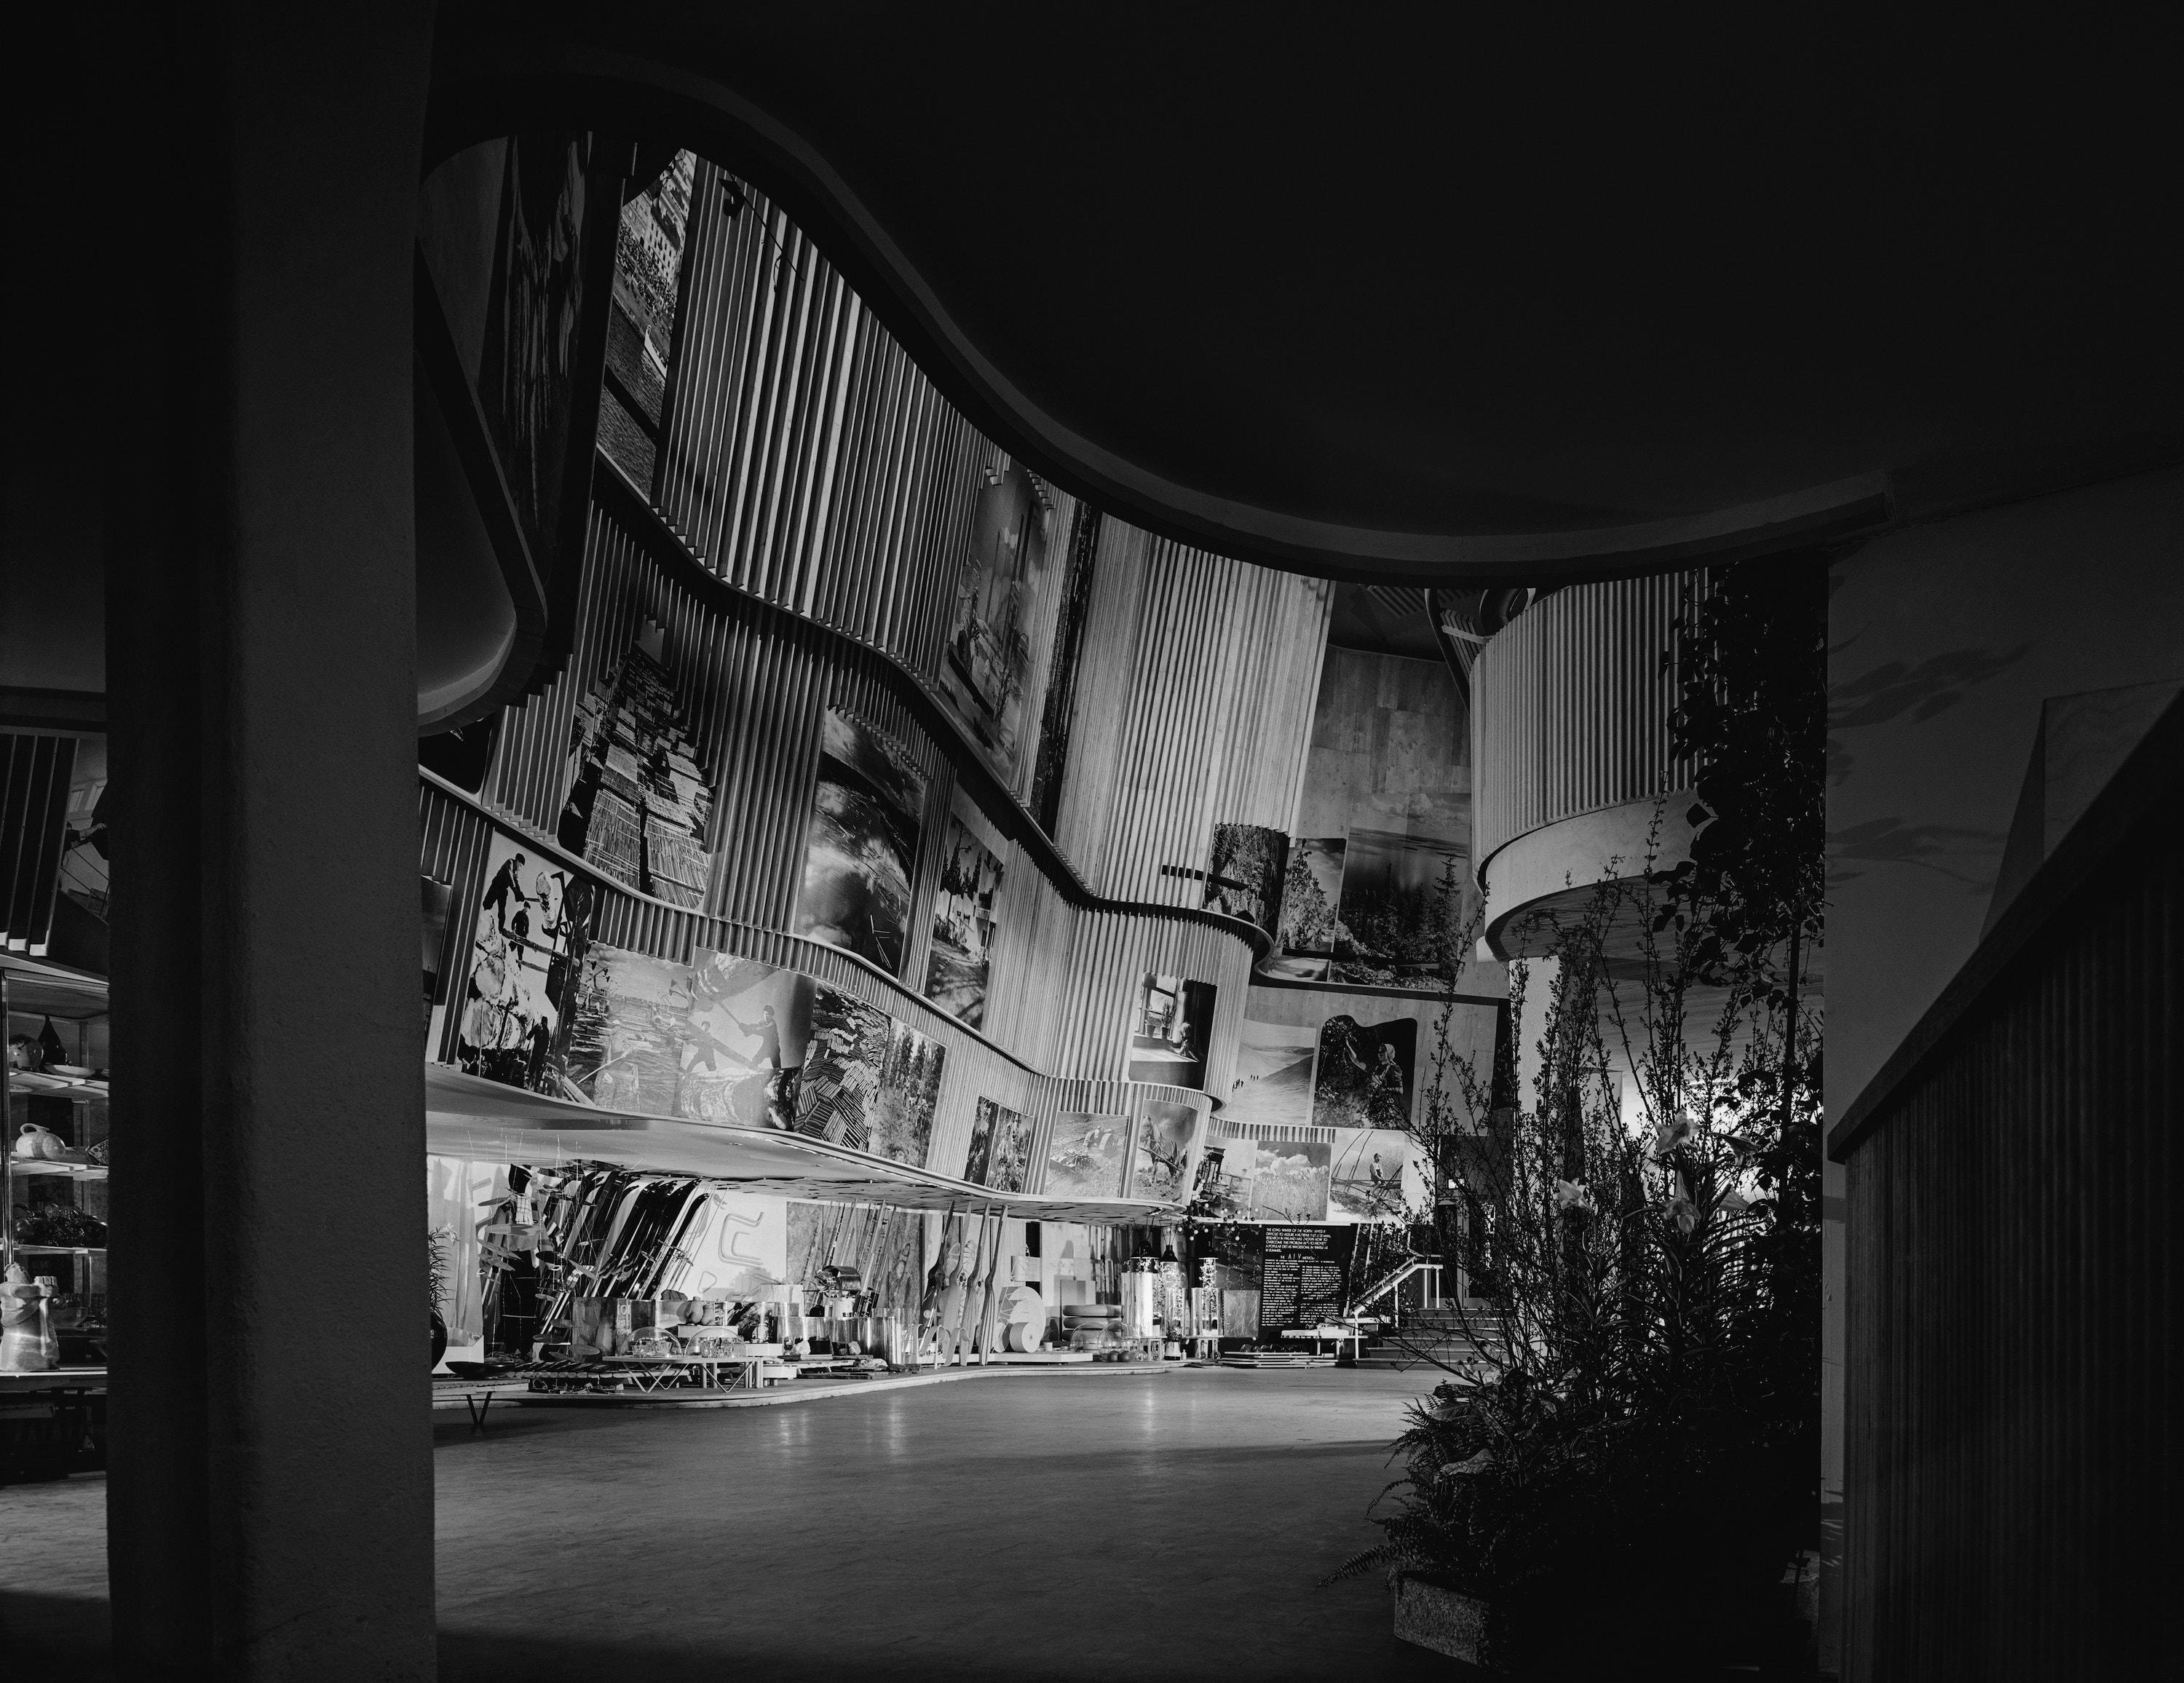 A major moment in Stoller's early career was being contracted by news agency Underwood & Underwood to photograph the pavilions of the 1939 New York World's Fair, including Alvar Aalto's Finnish Pavilion.